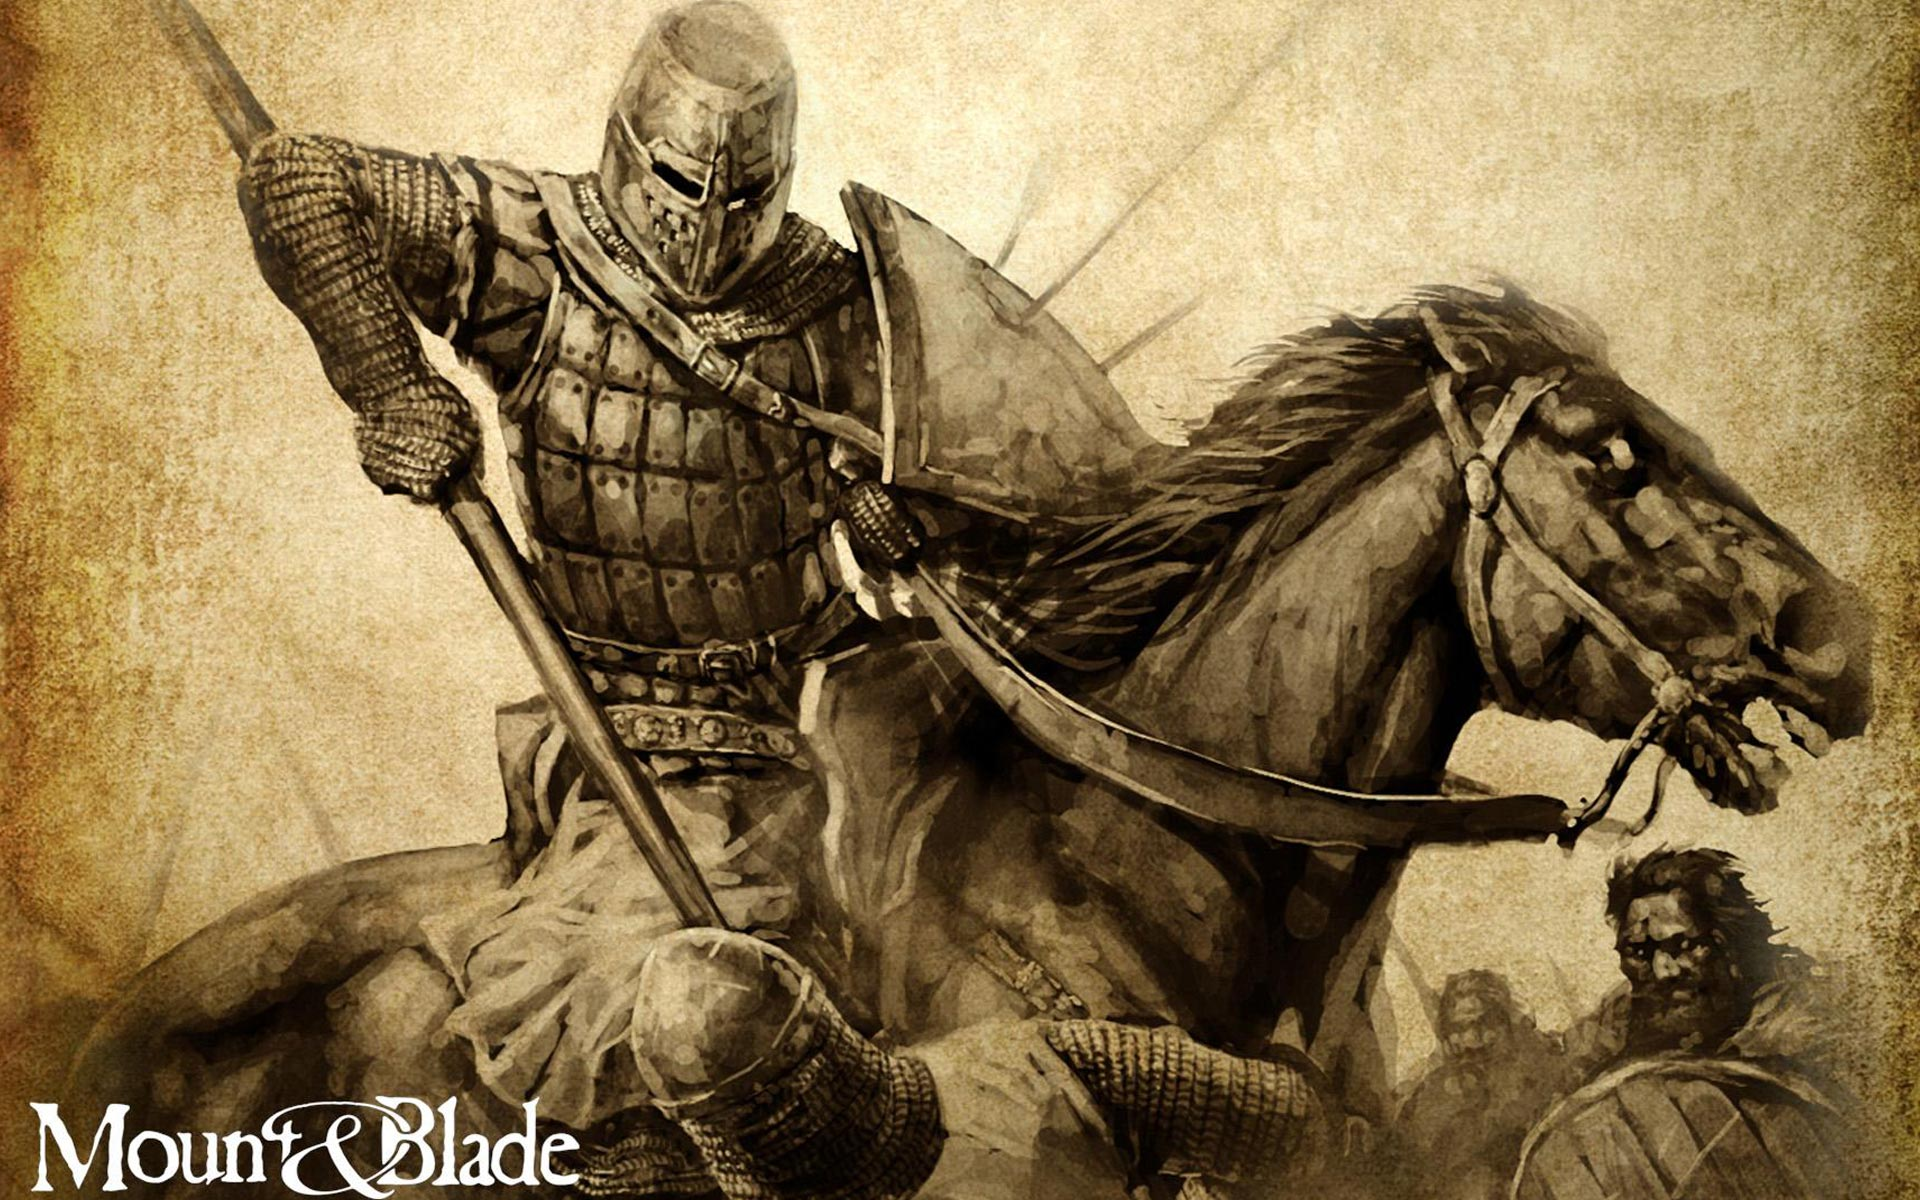 MOUNT AND BLADE fantasy warrior armor knight battle horse poster f 1920x1200